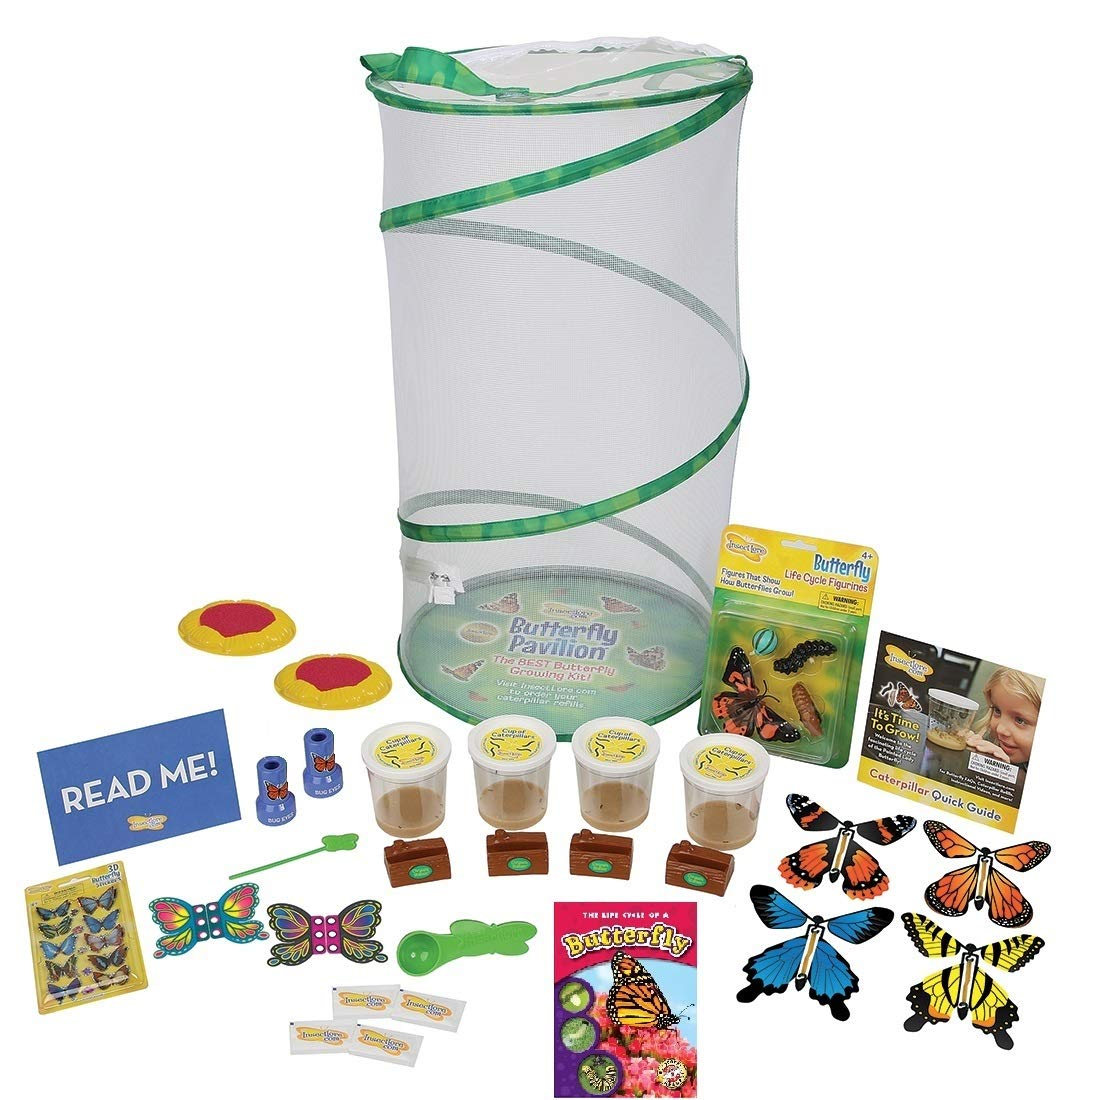 Insect Lore Platinum Edition Butterfly Pavilion Kit by Insect Lore